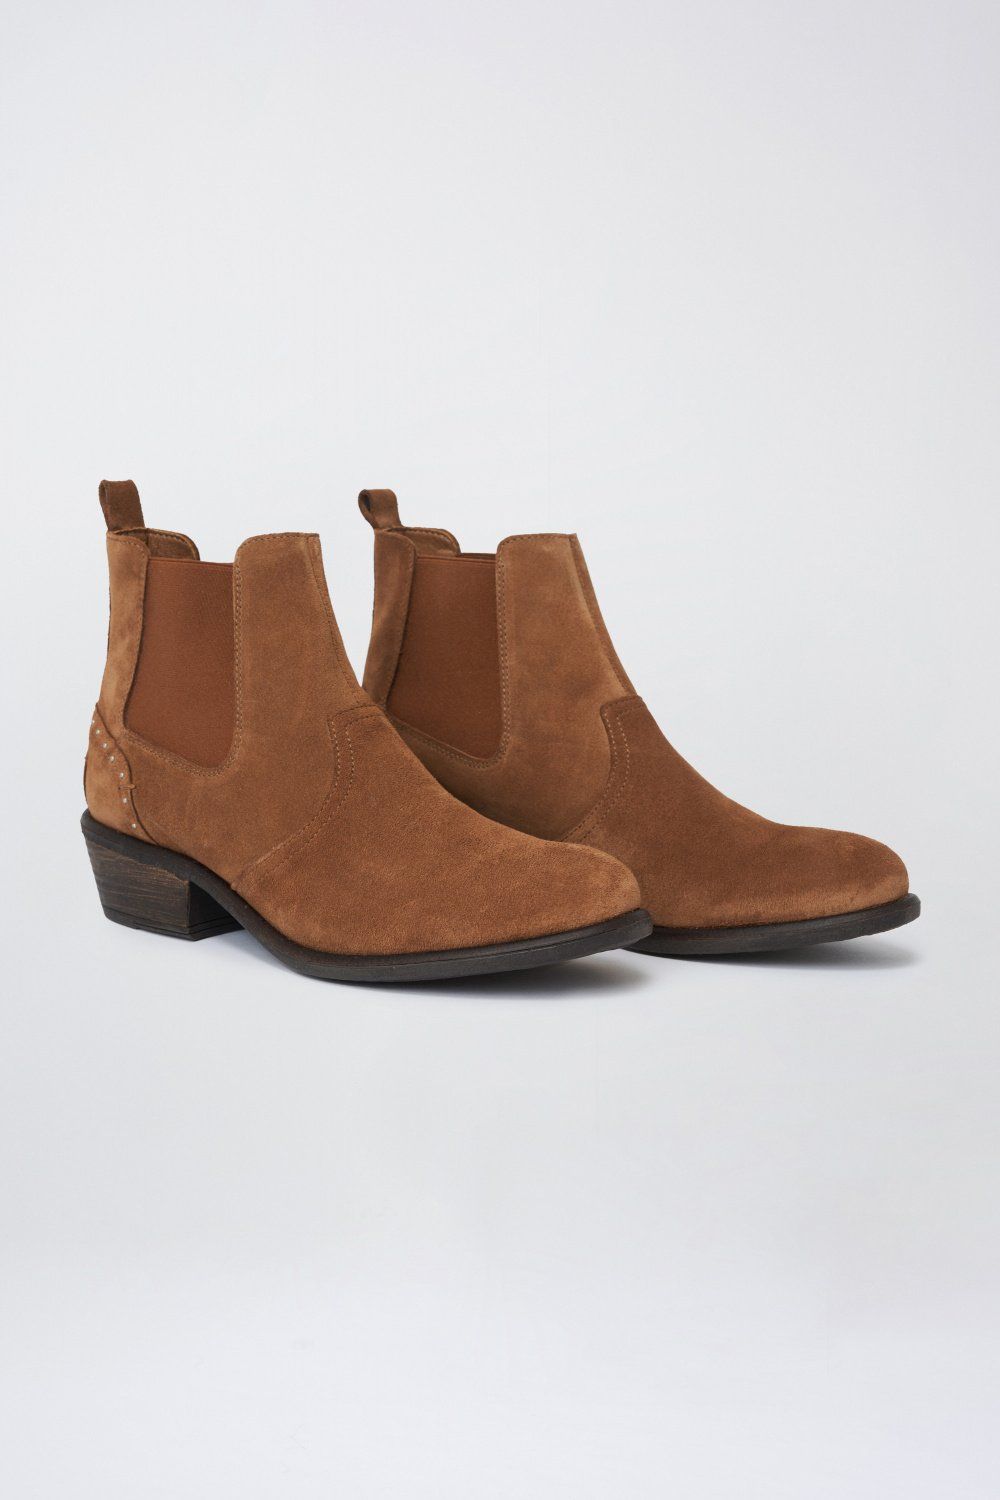 Suede ankle boot with stud detail and a low heel - Salsa